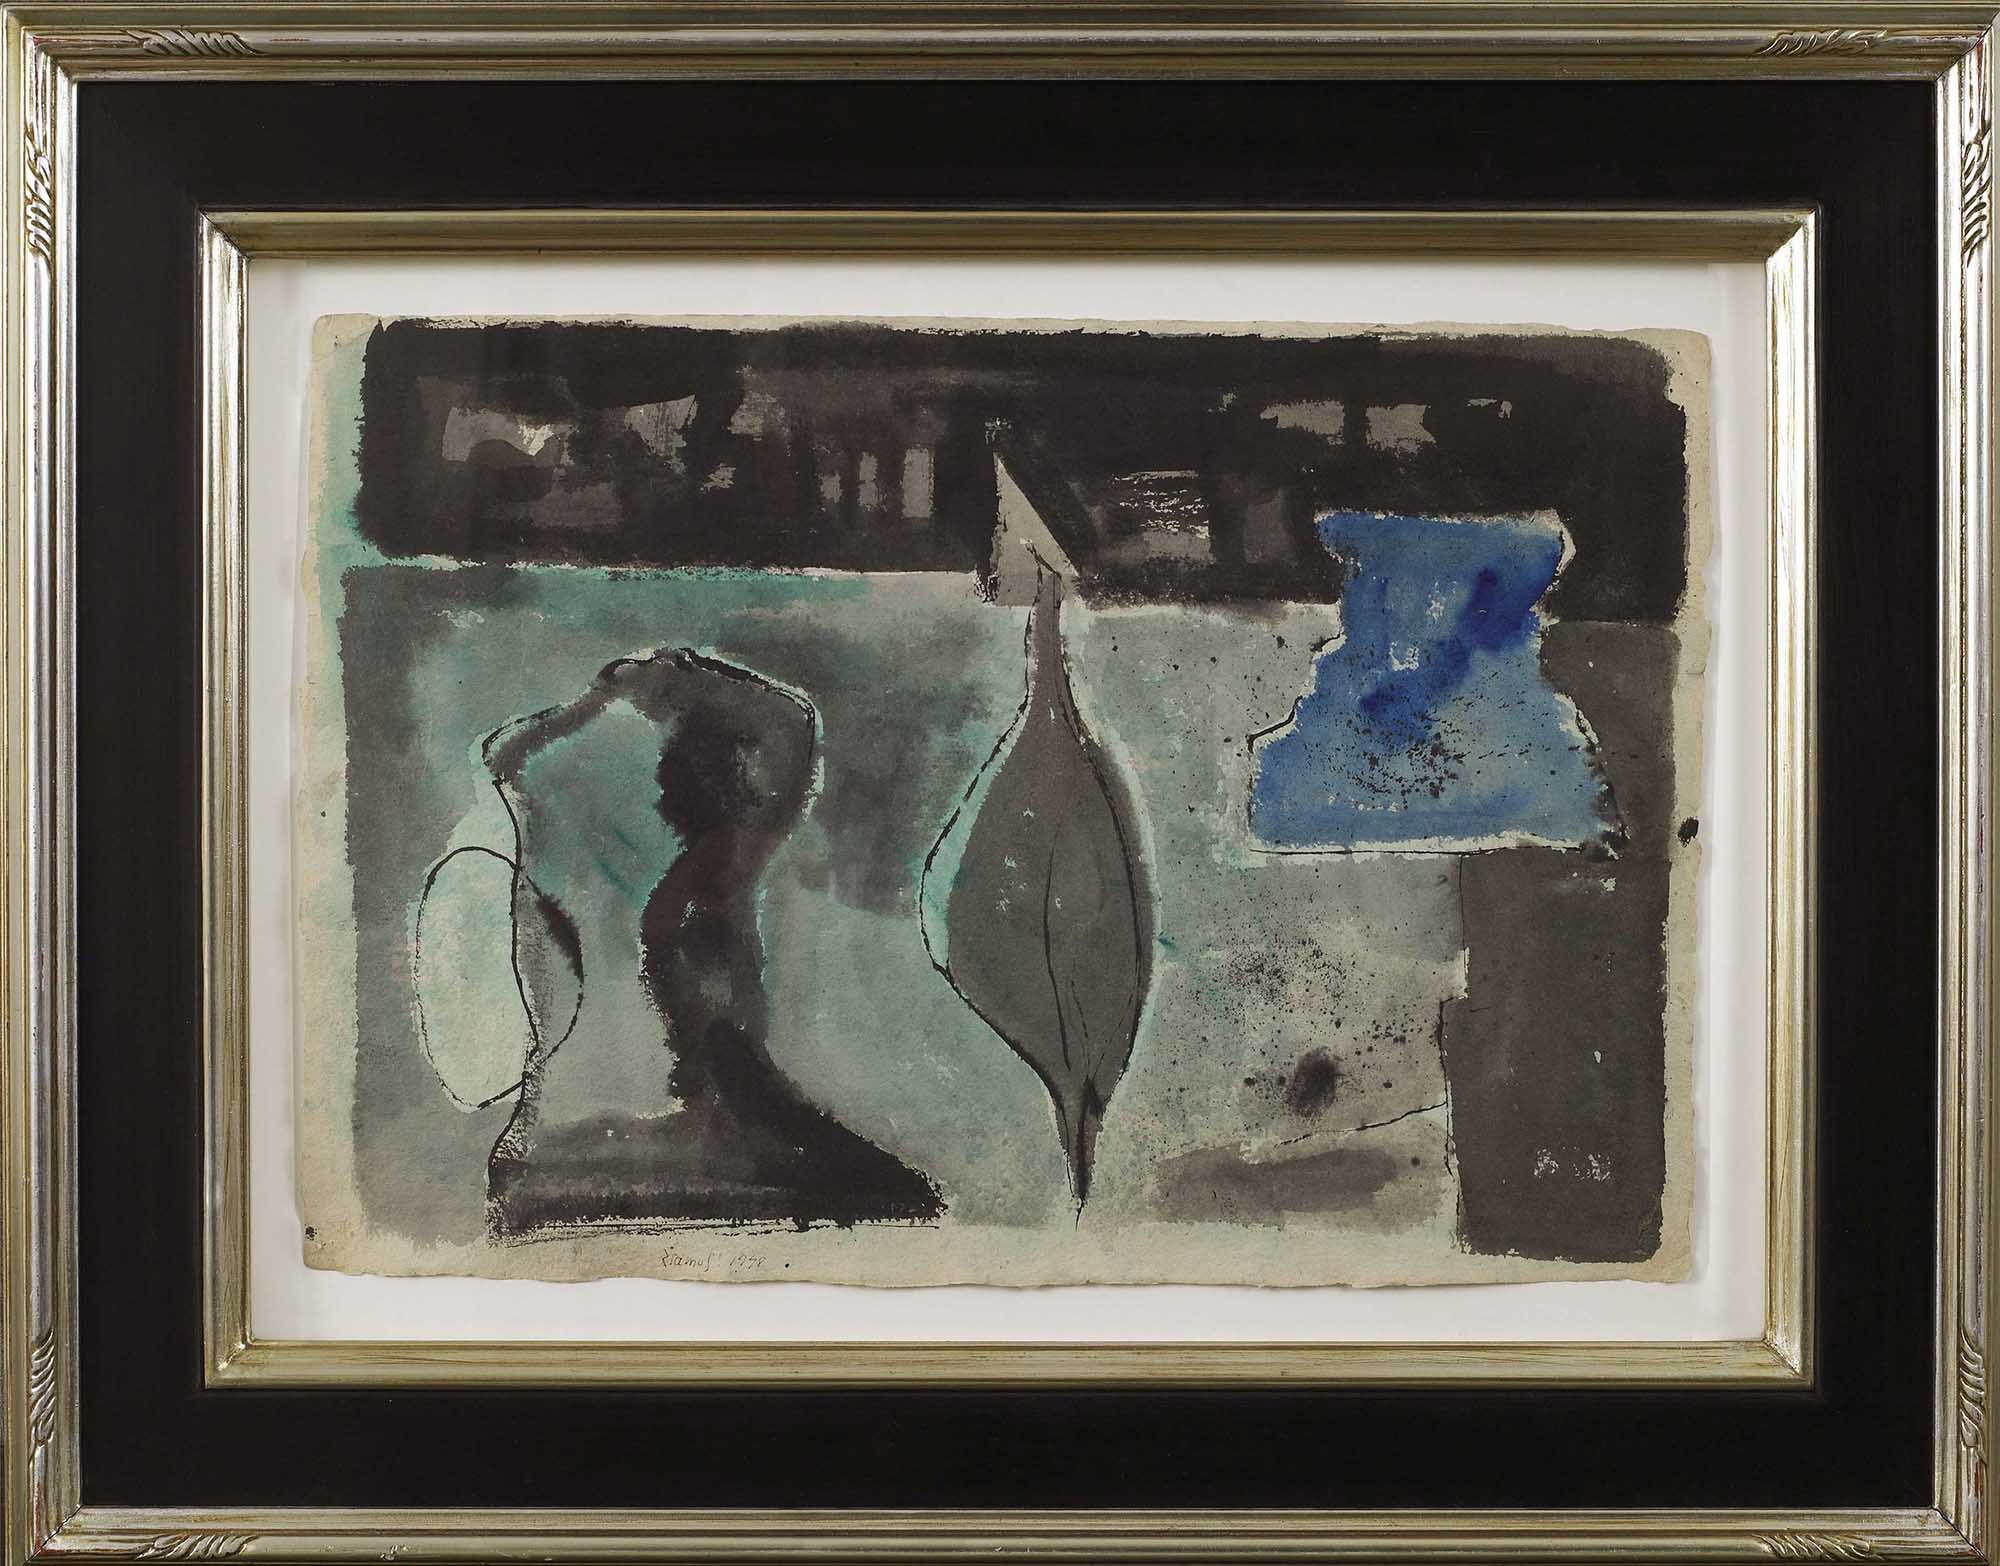 SOLD    Untitled, 1948 (Study for Three Kings, 1949),   Watercolor and ink on paper, 15 3/8 x 21 1/4 inches